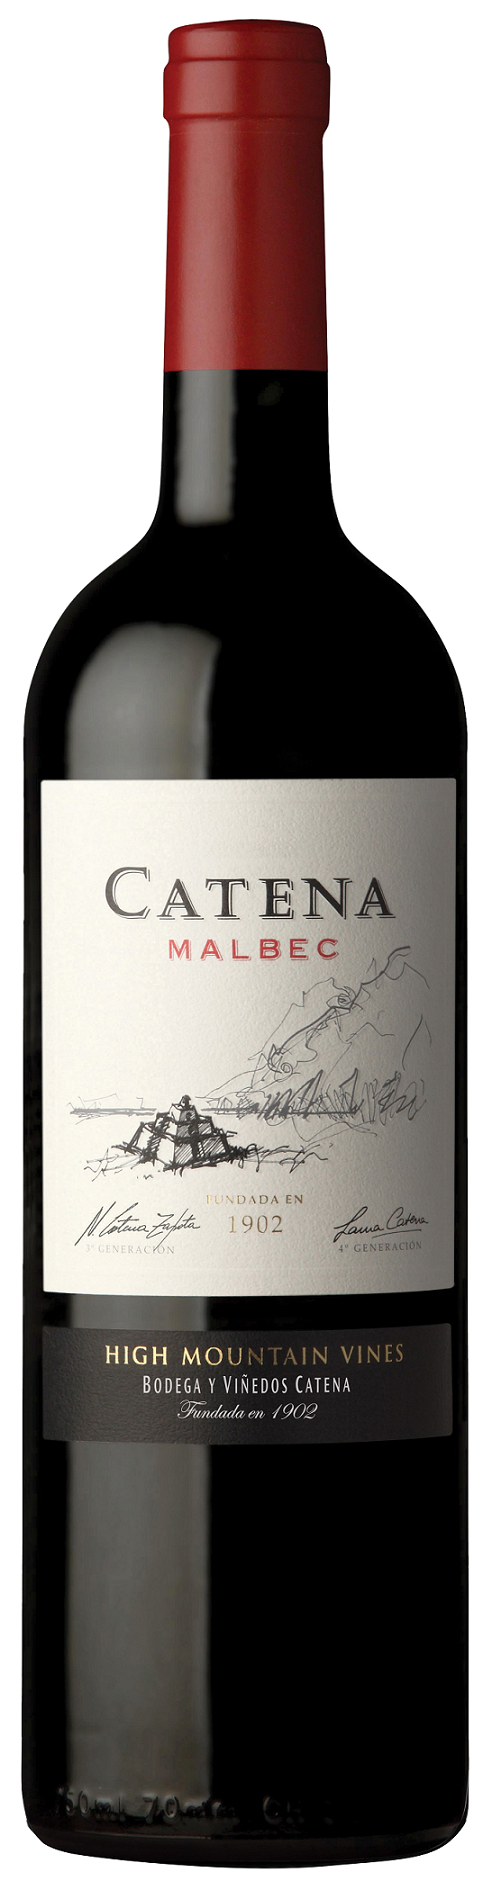 catena malbec flaska